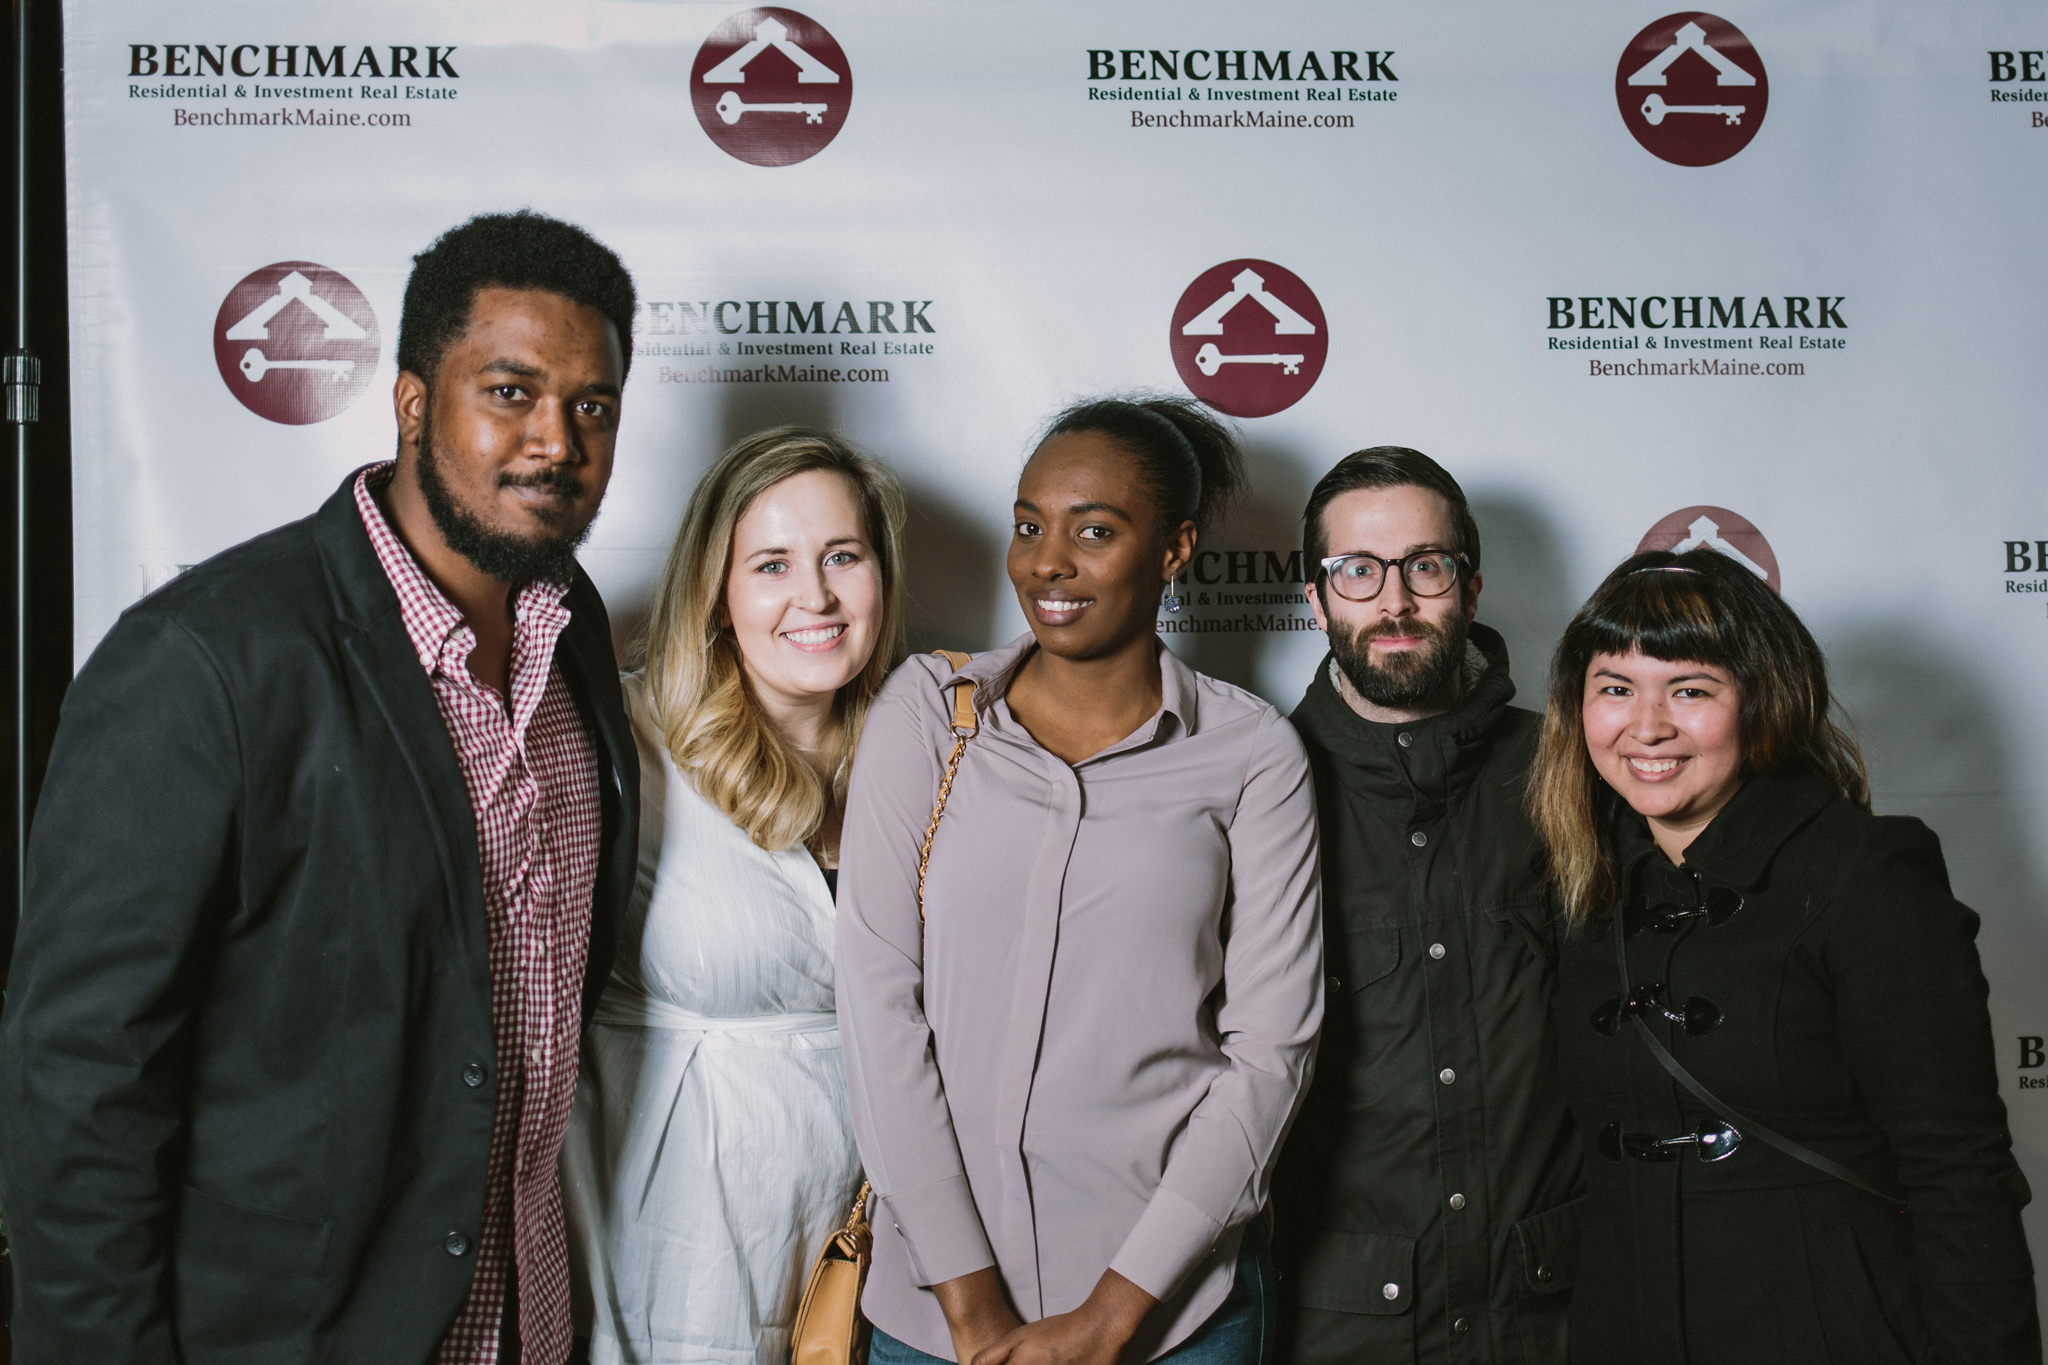 Benchmark_Holiday_Party_SR-065.jpg